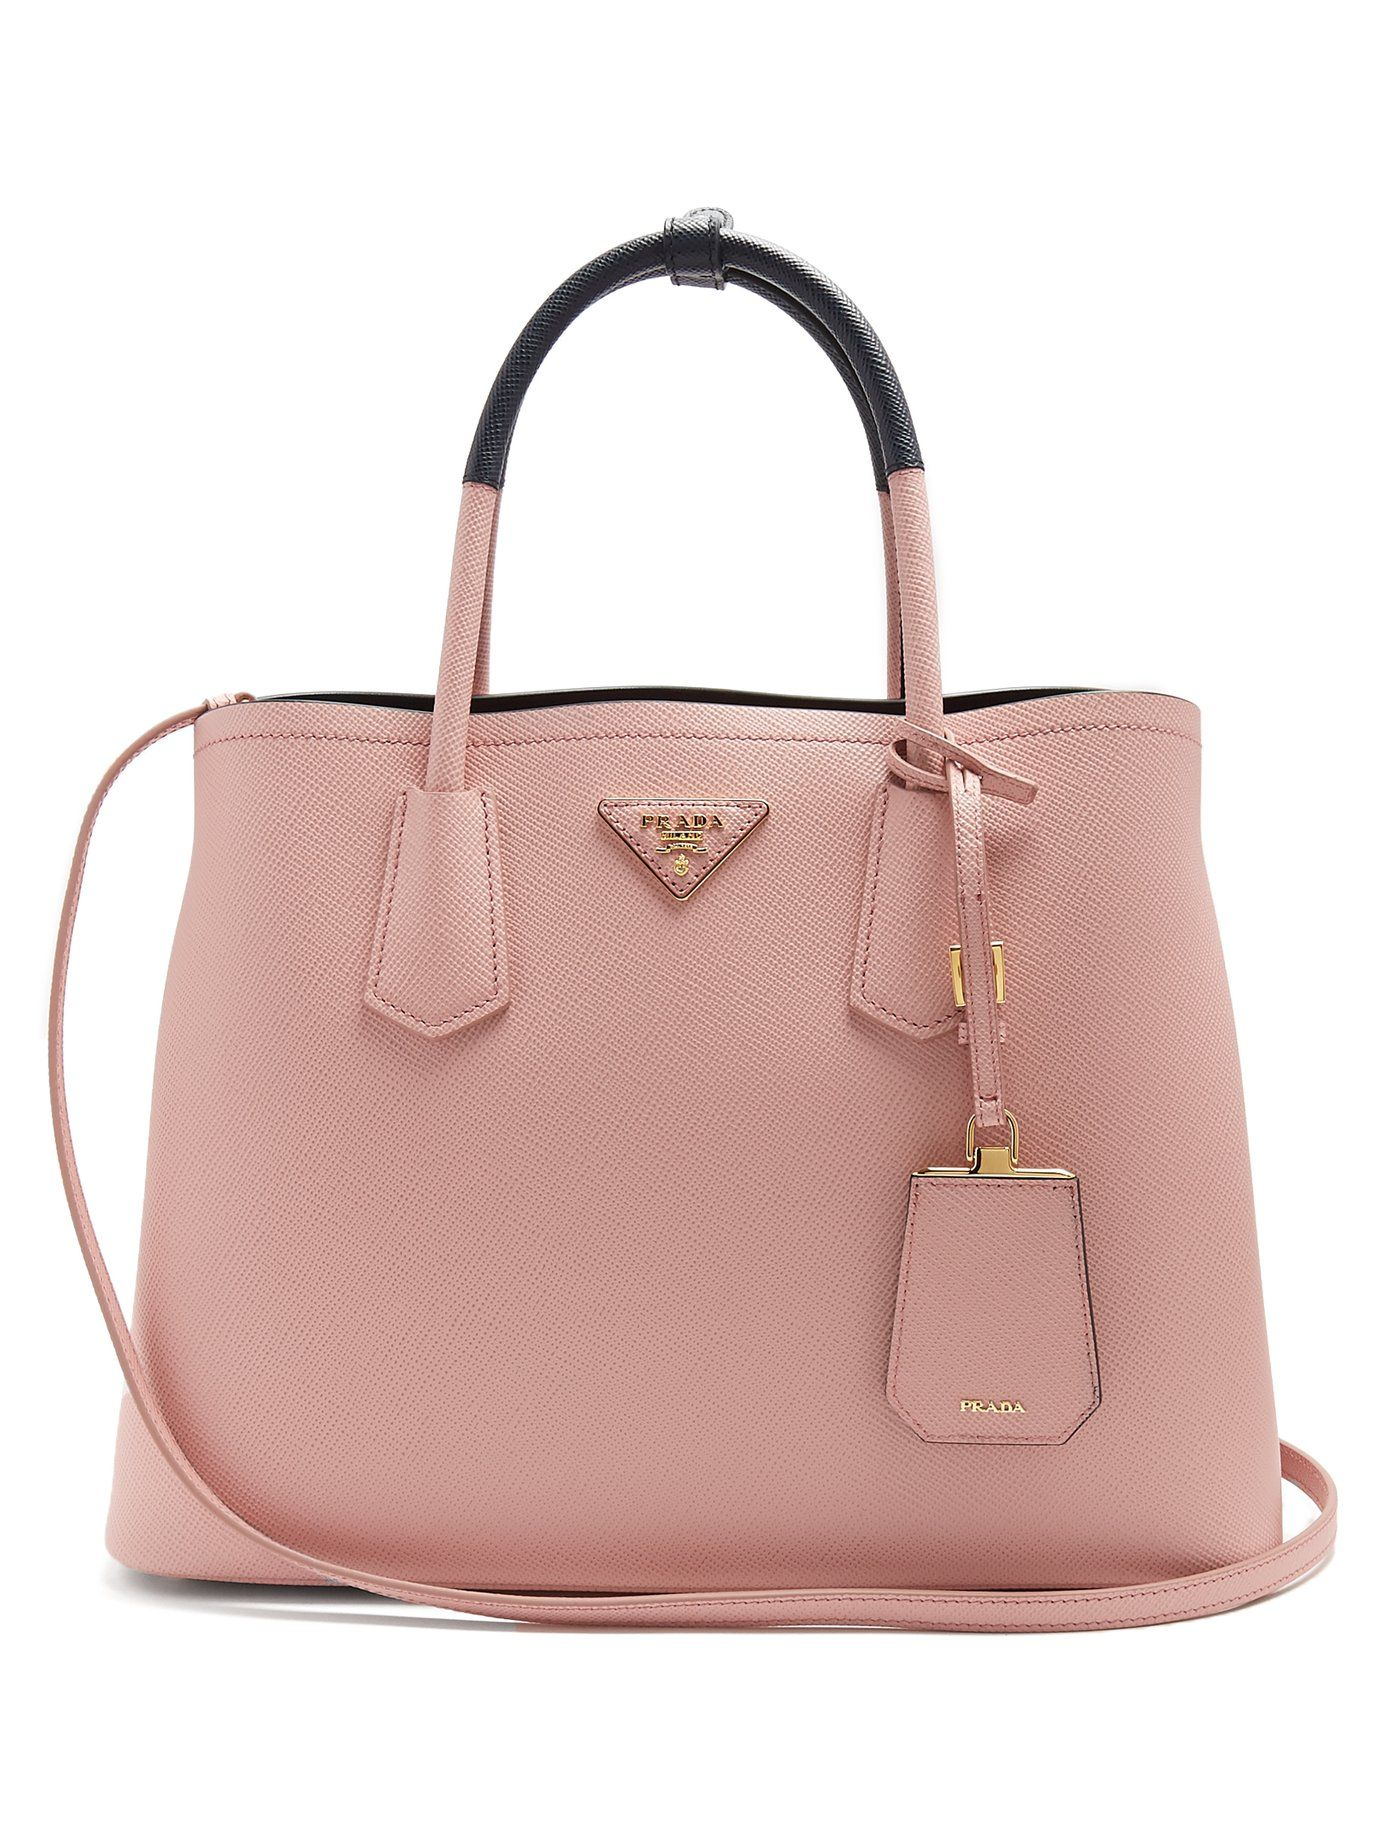 2ff78451816b switzerland this dusty pink saffiano leather prada bag is the ideal  accompaniment for busy daily c81ba